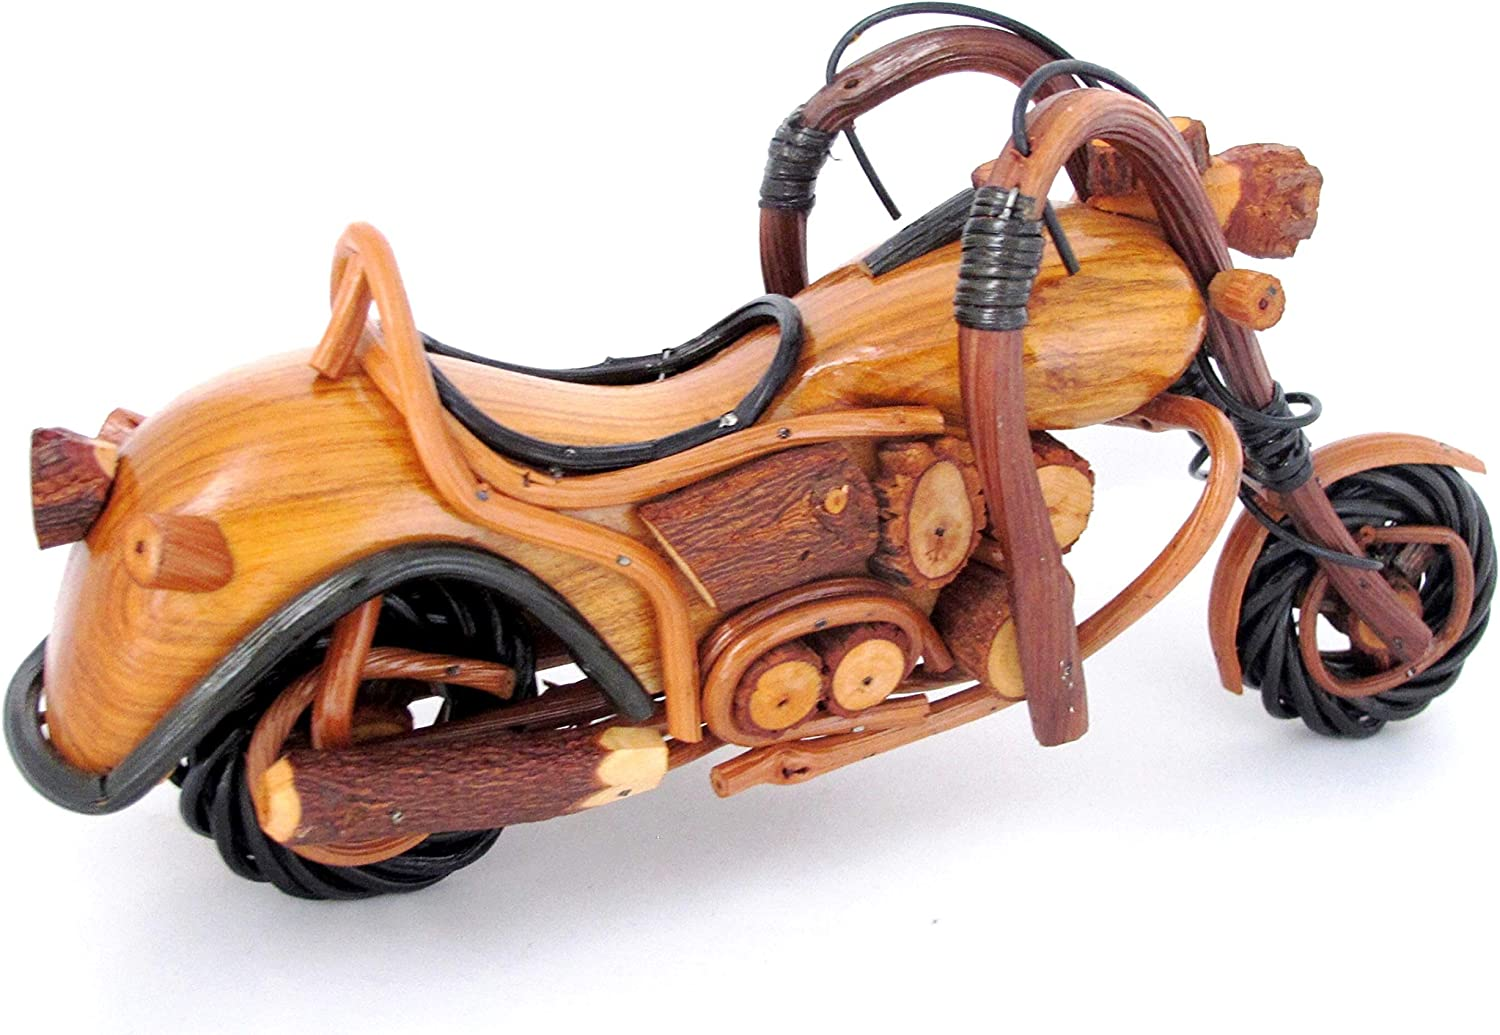 Blue Orchid Wooden Motorcycle Figurine Decorations for Home - Handmade Motorcycle Model Wood Harley Chopper Collectible Sculpture - 11.5 Inches